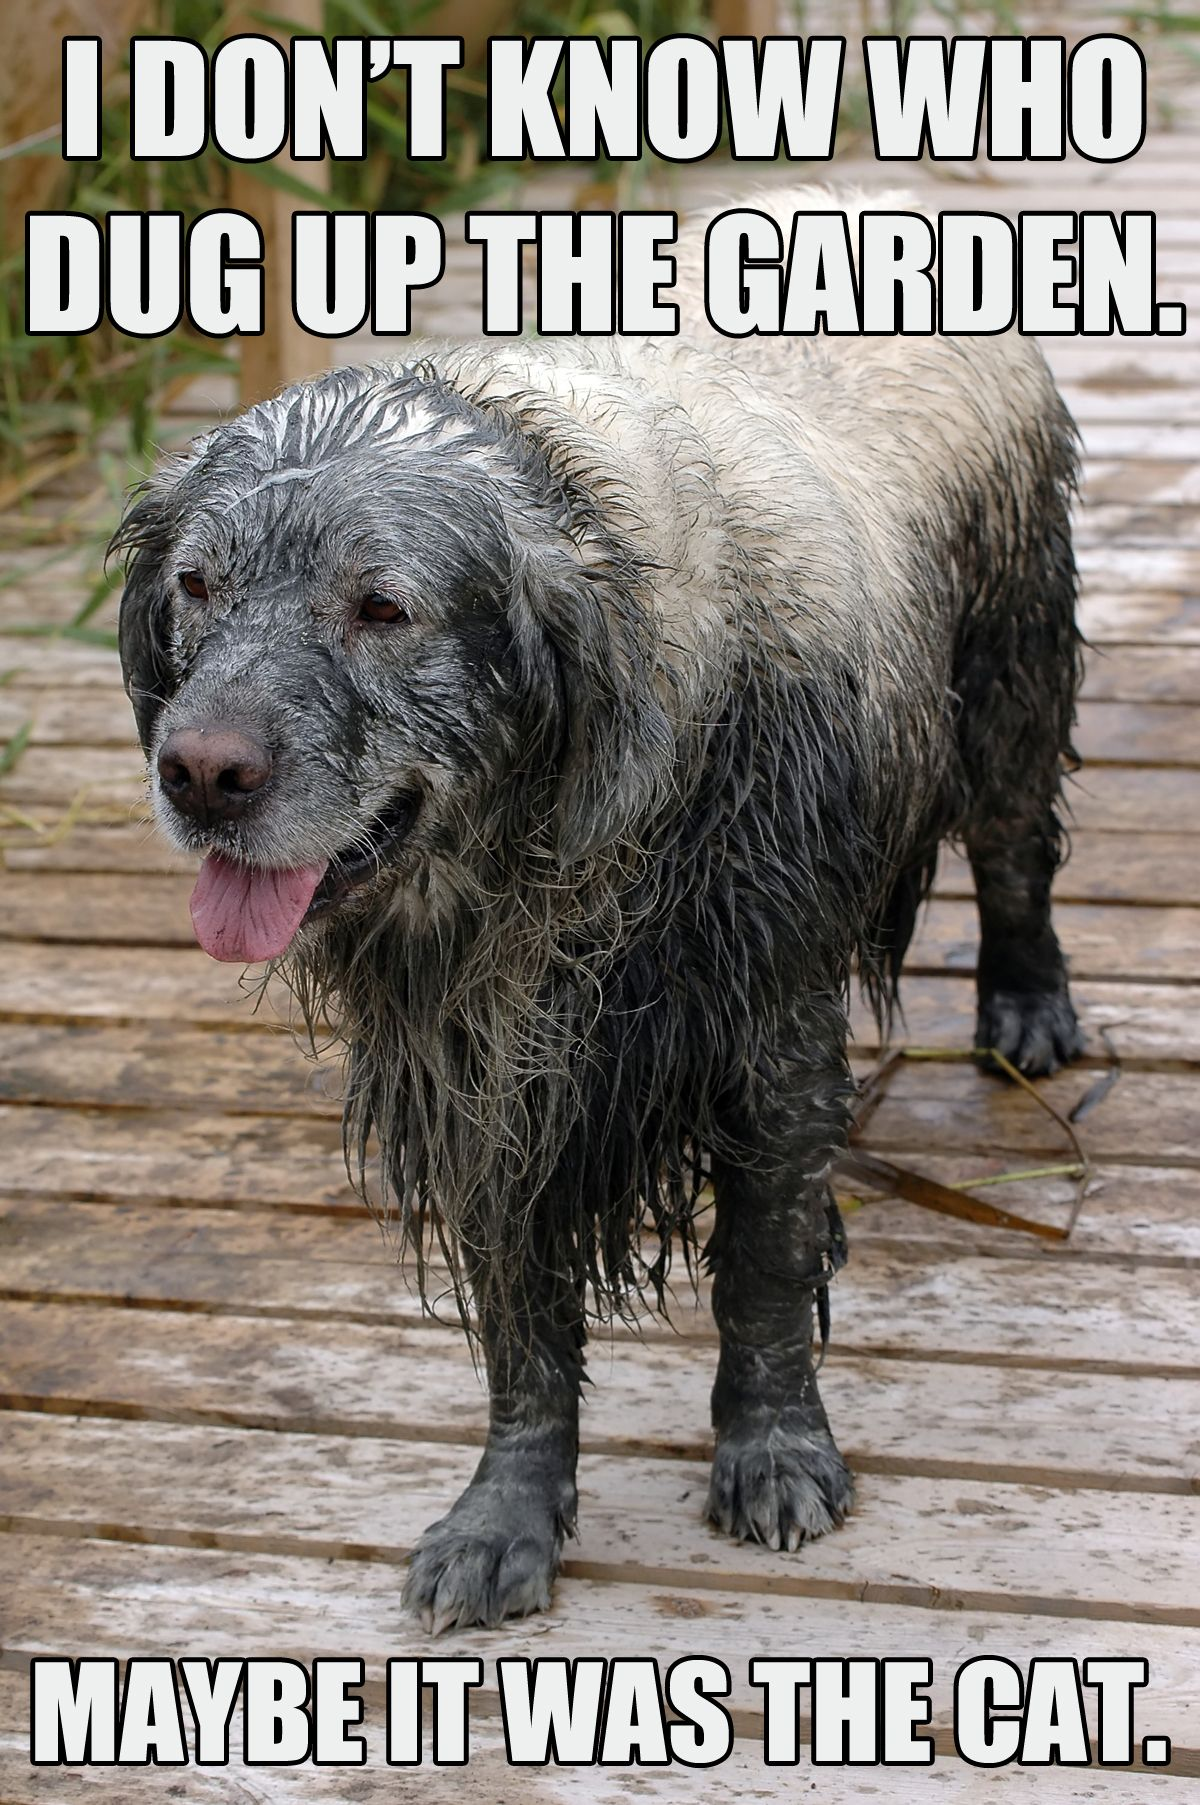 Dog memes, part 5: The good, the sad, and the funny | Dog ... - photo#36